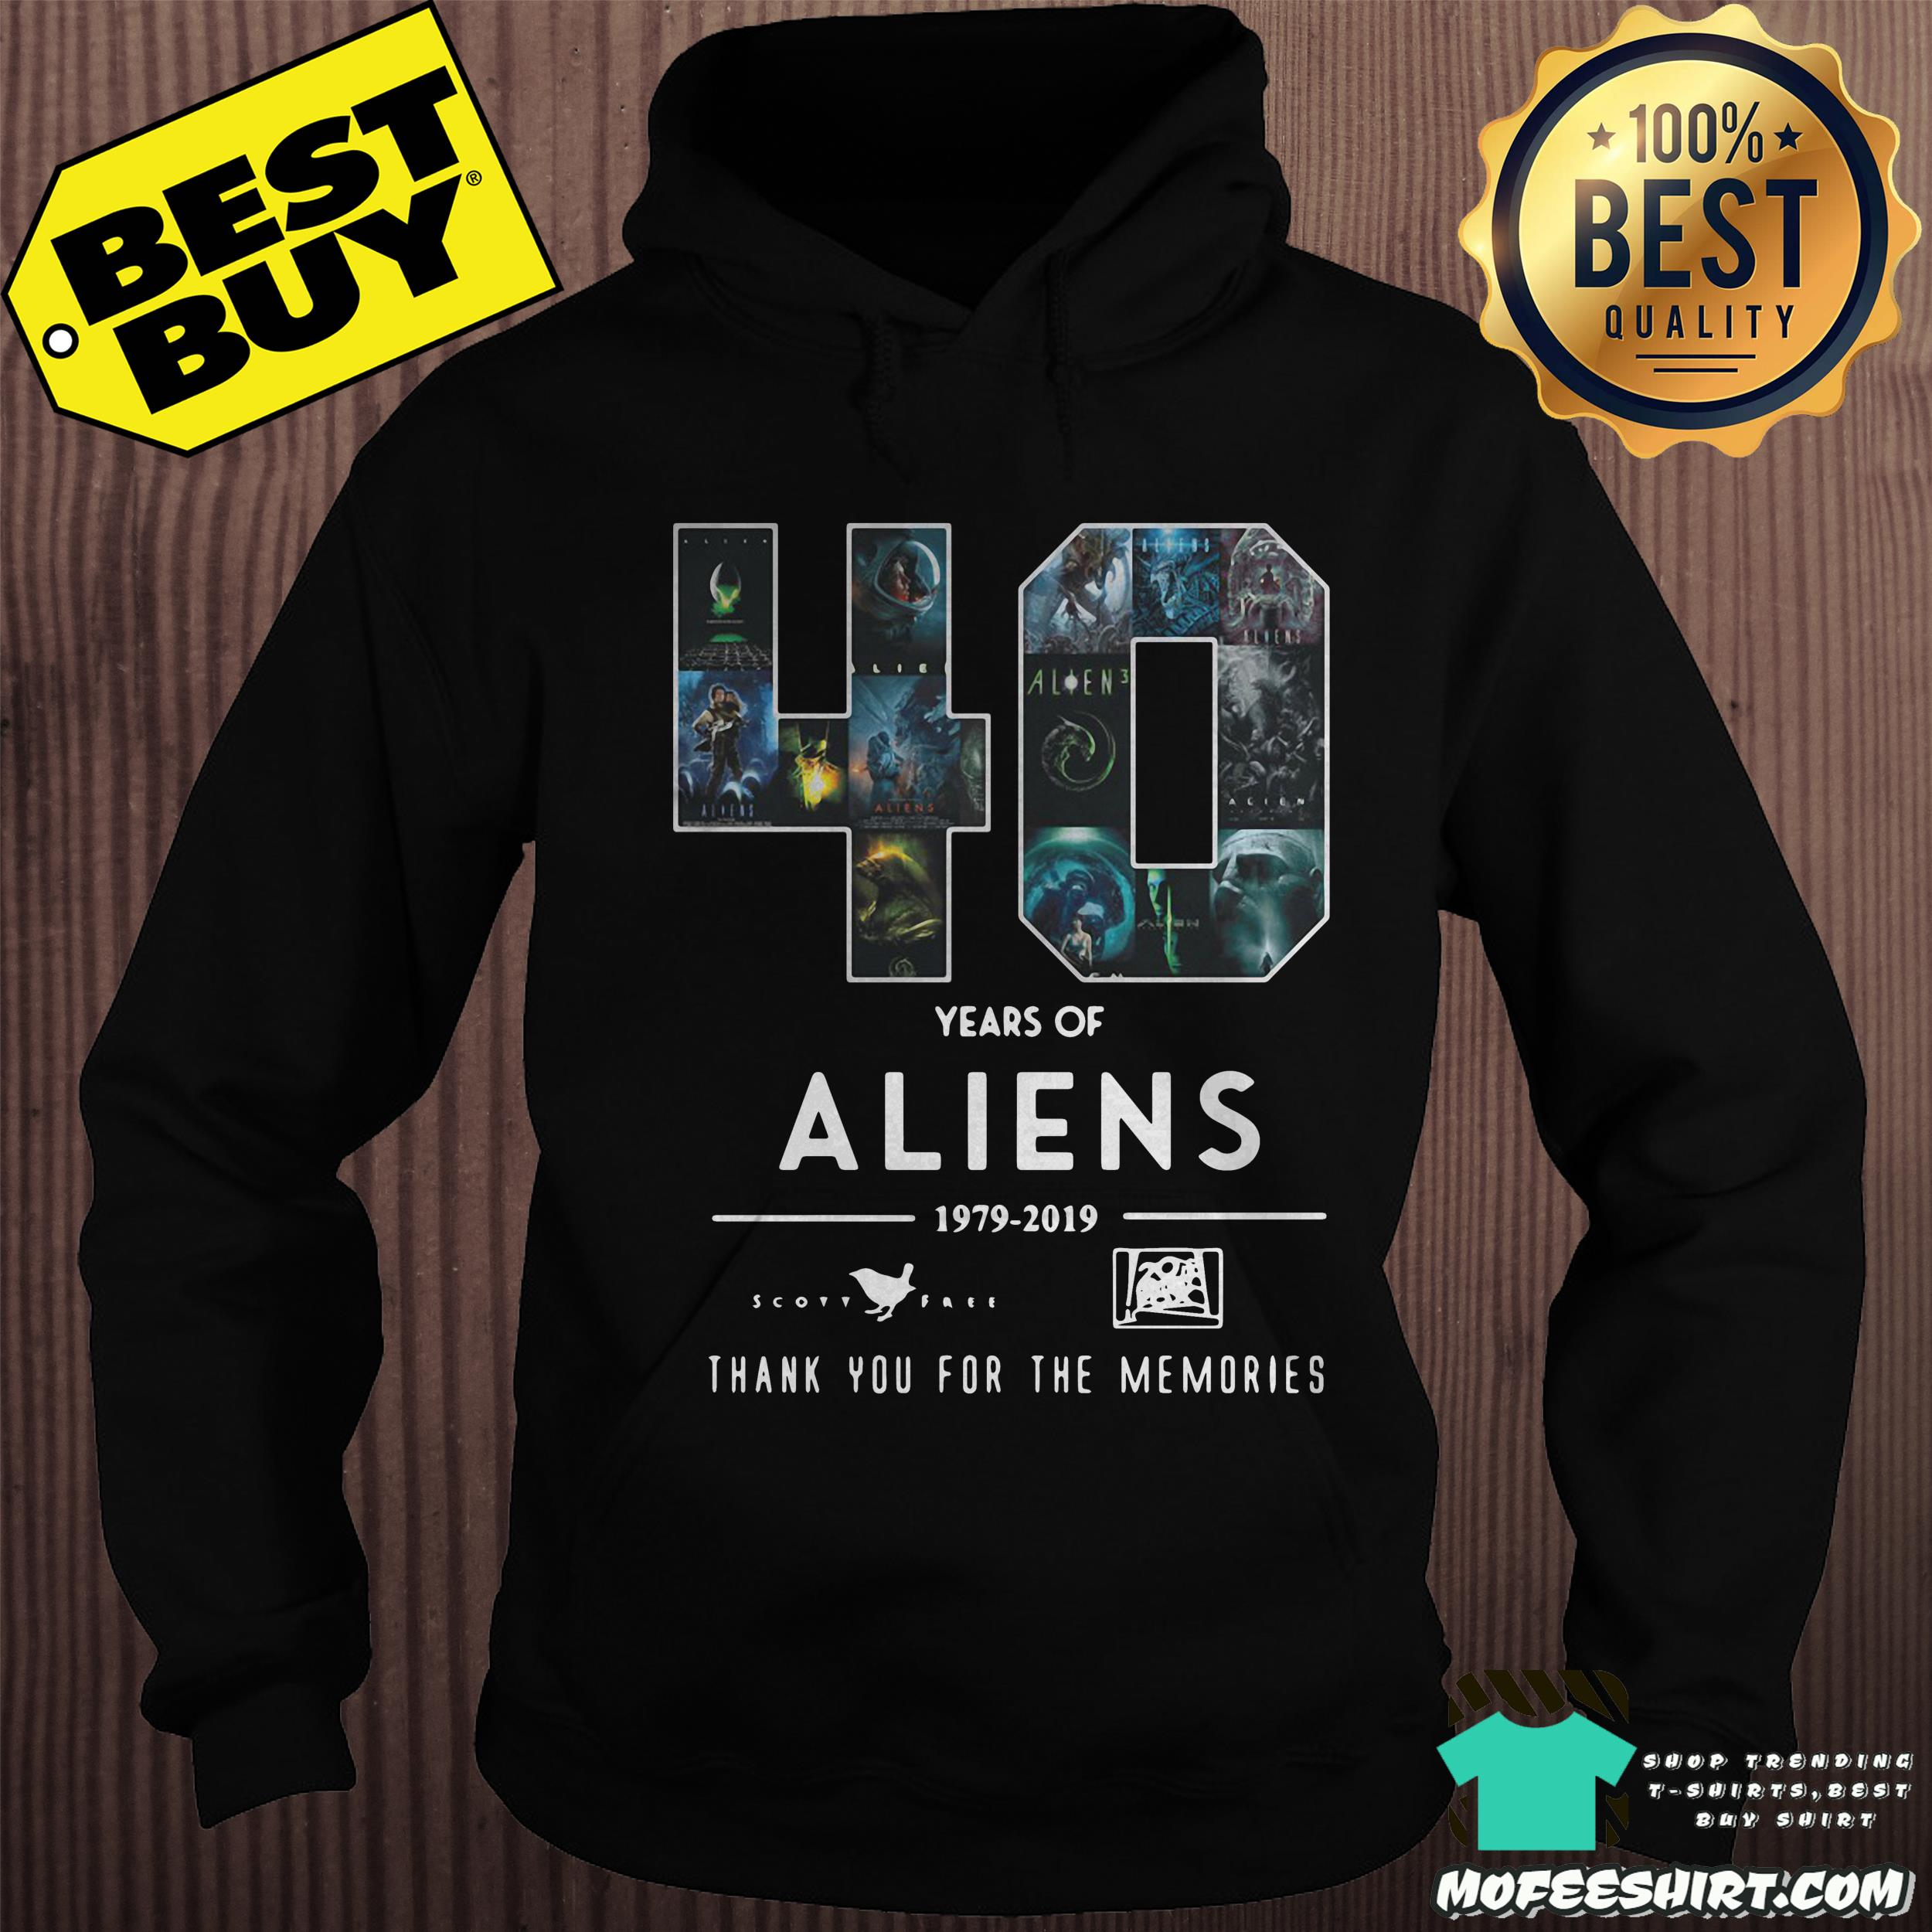 40 years of aliens 1979 2019 thank you for the memories hoodie - 40 years of aliens 1979-2019 thank you for the memories shirt